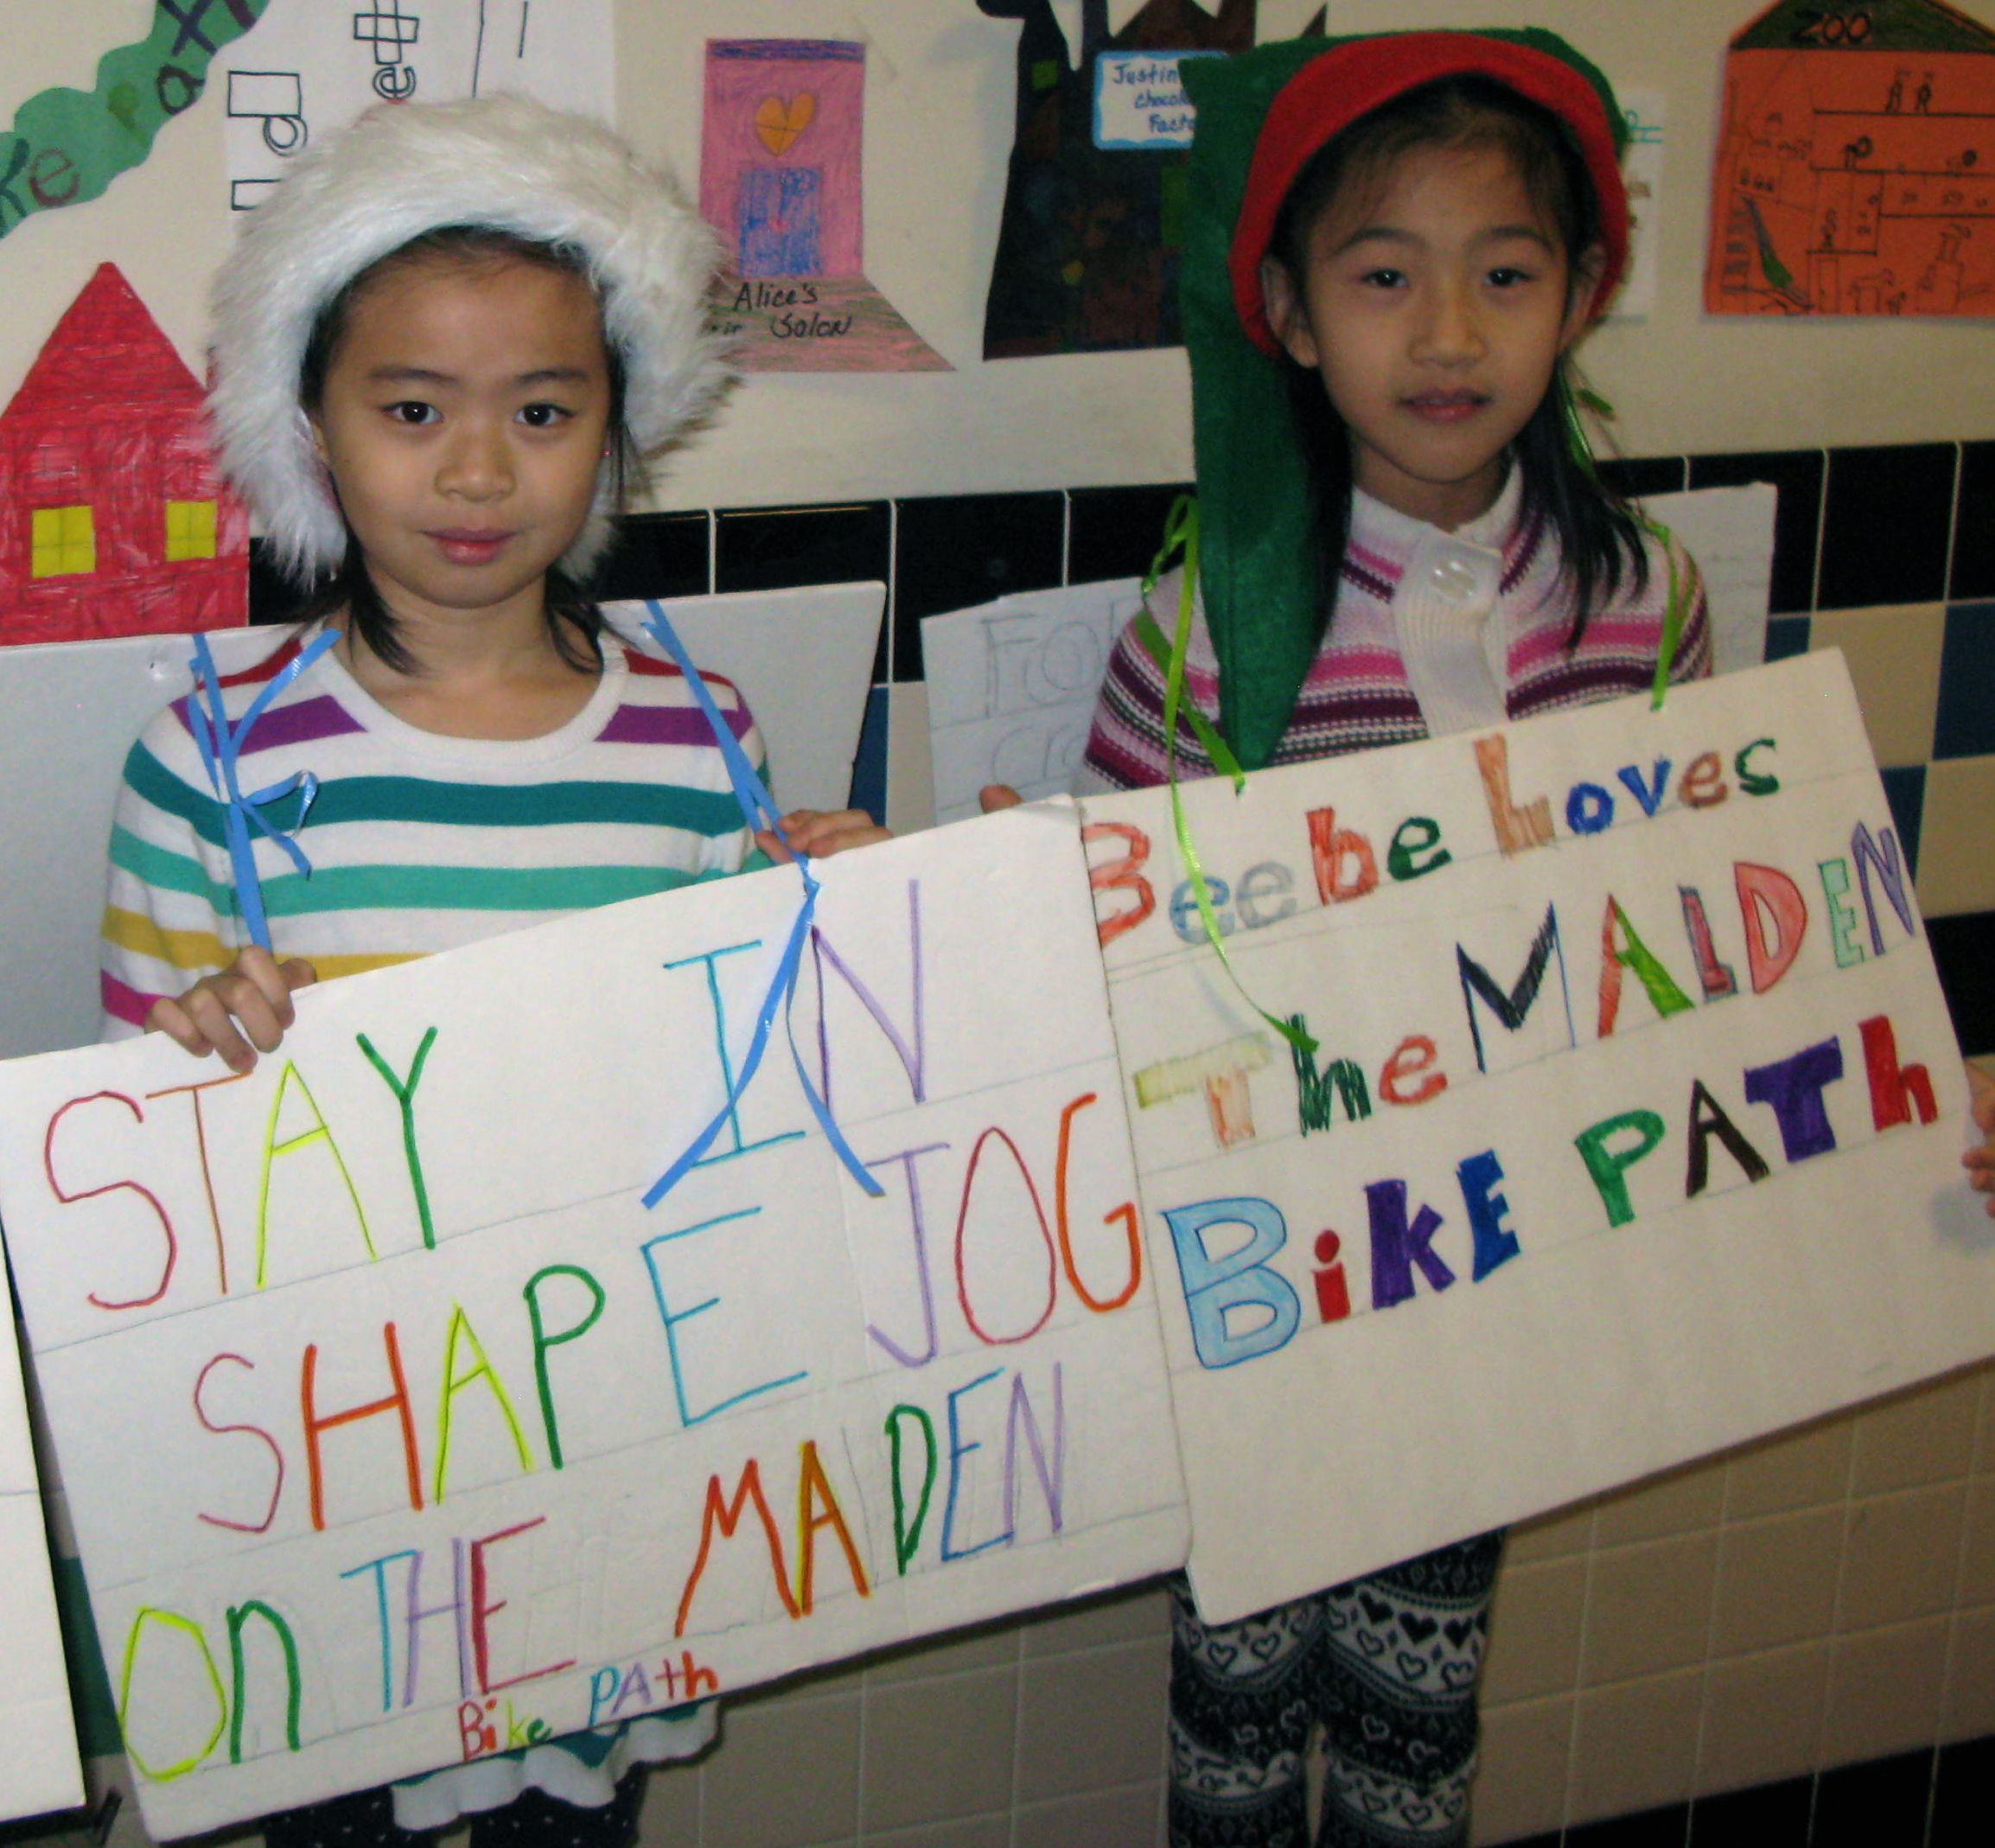 Second grade students hold signs promoting bike path.